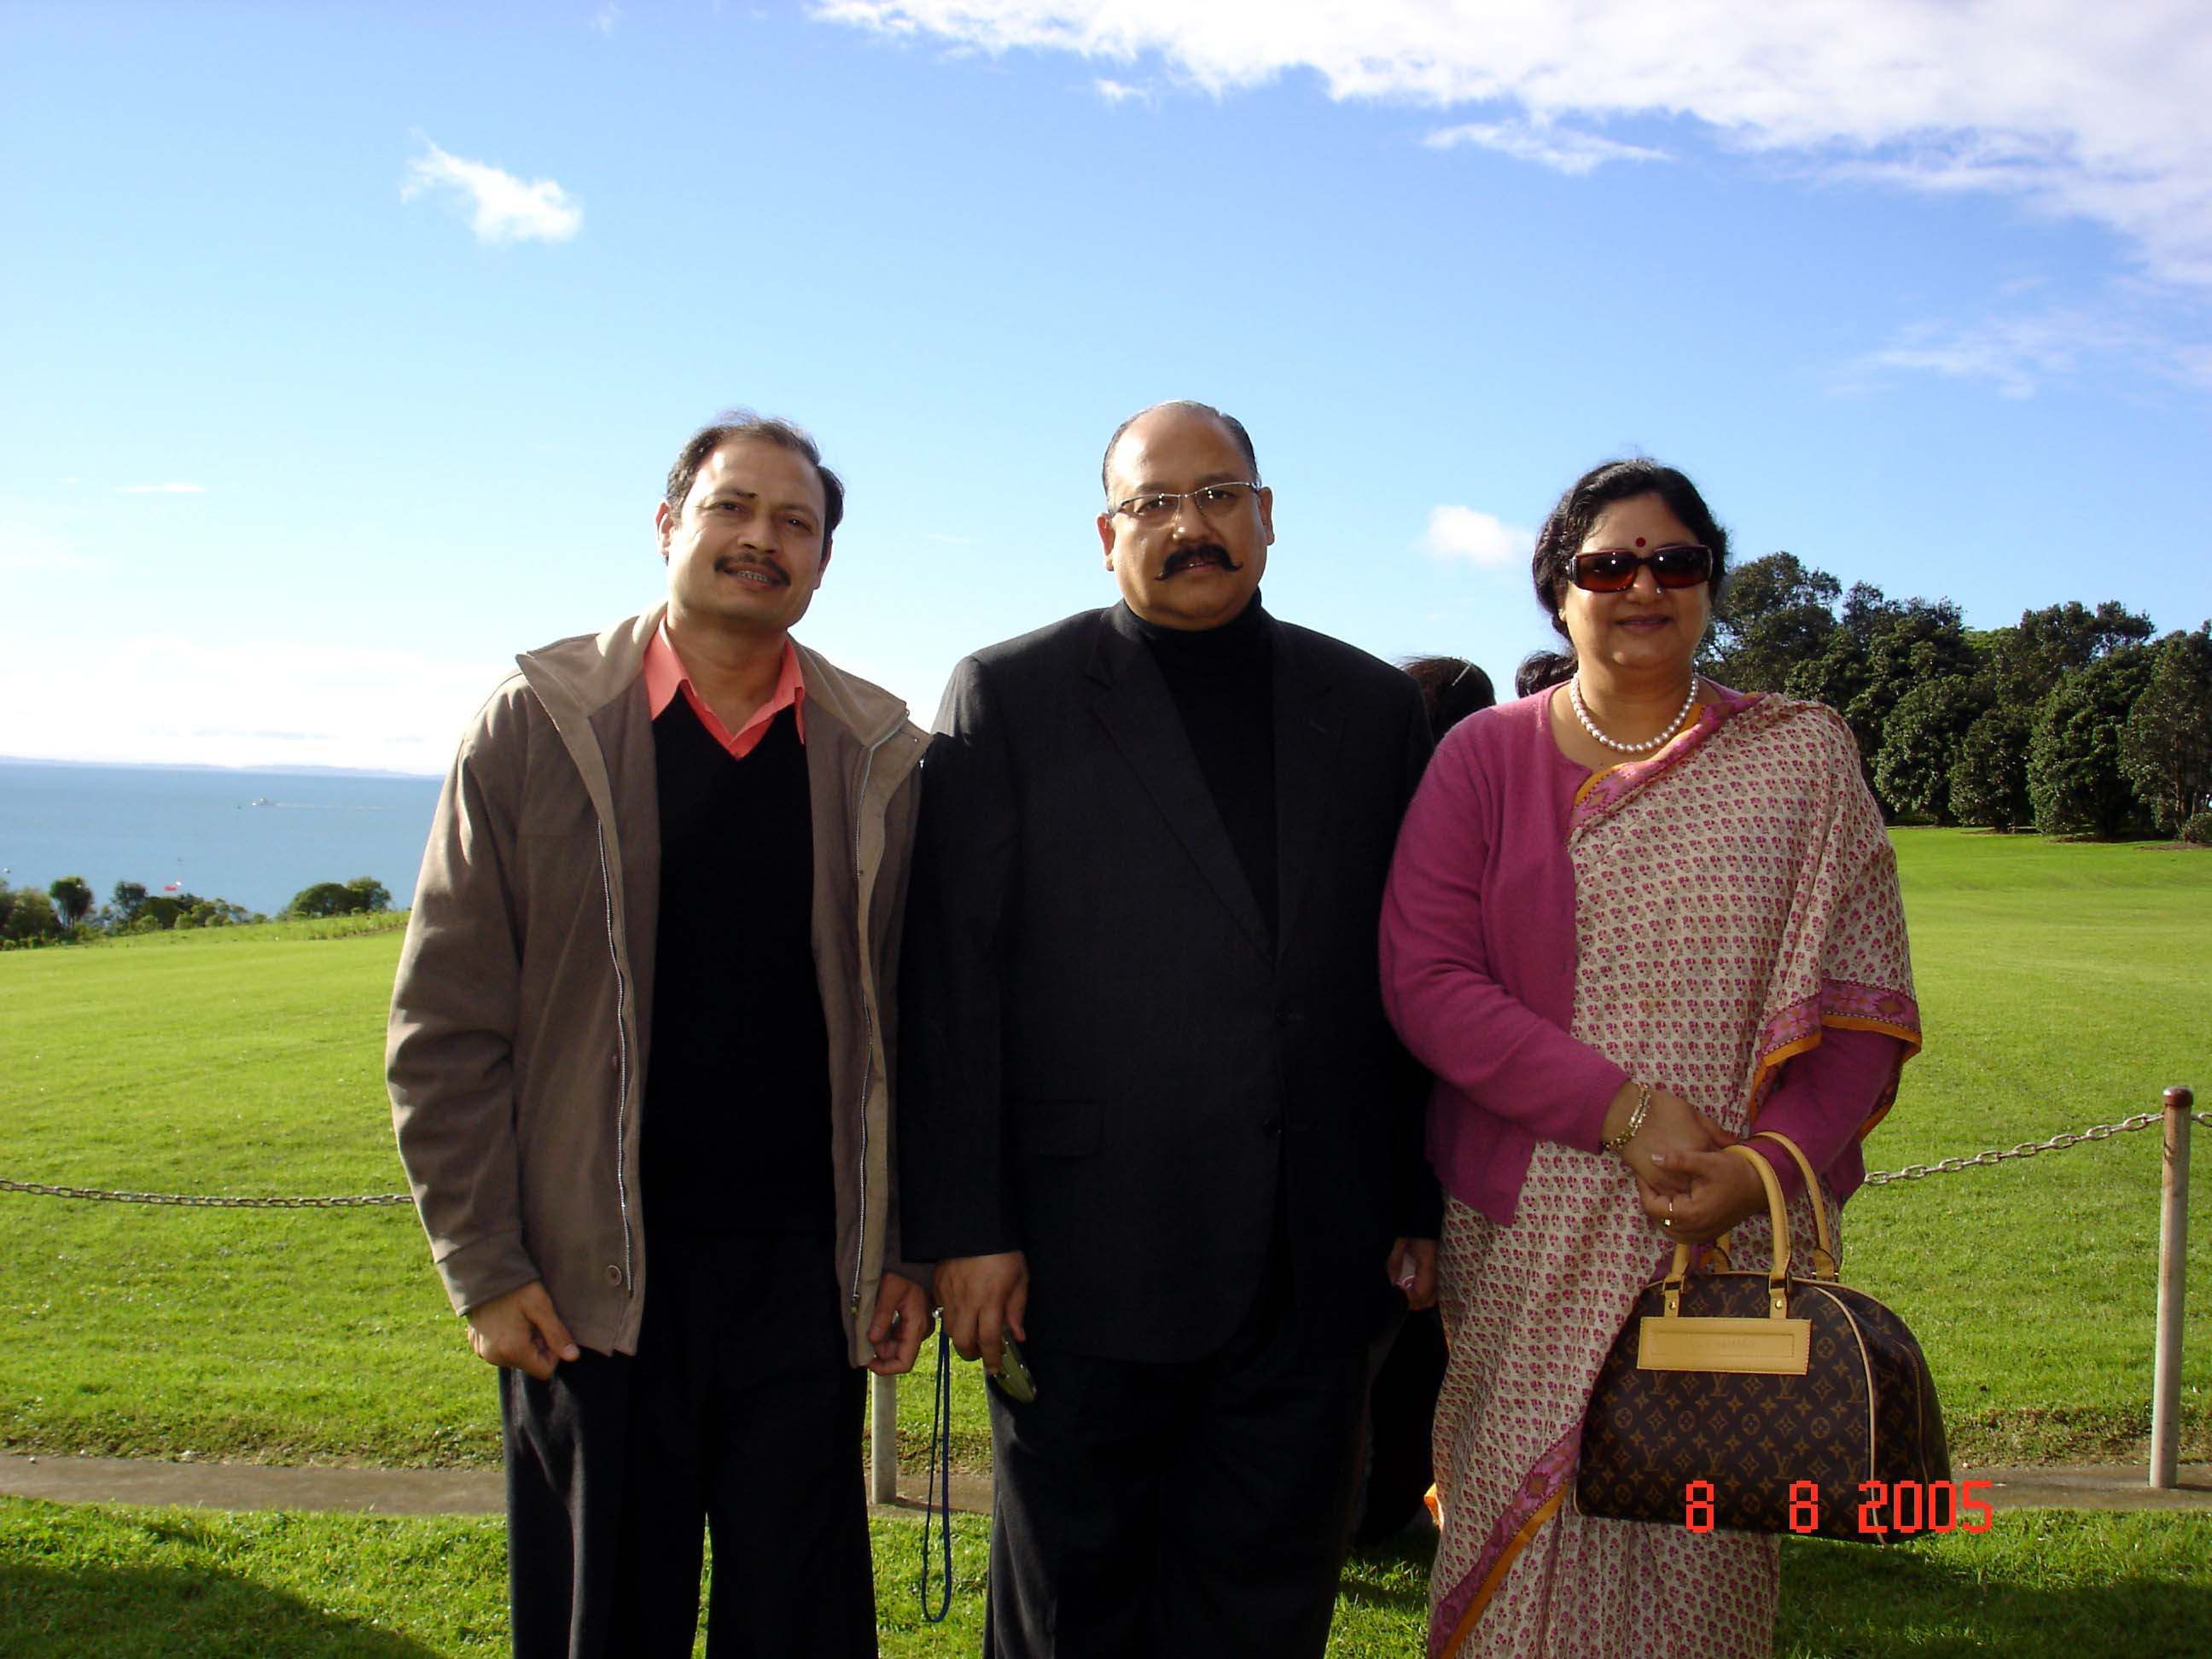 Distinguished participants during a field visit in New Zealand.